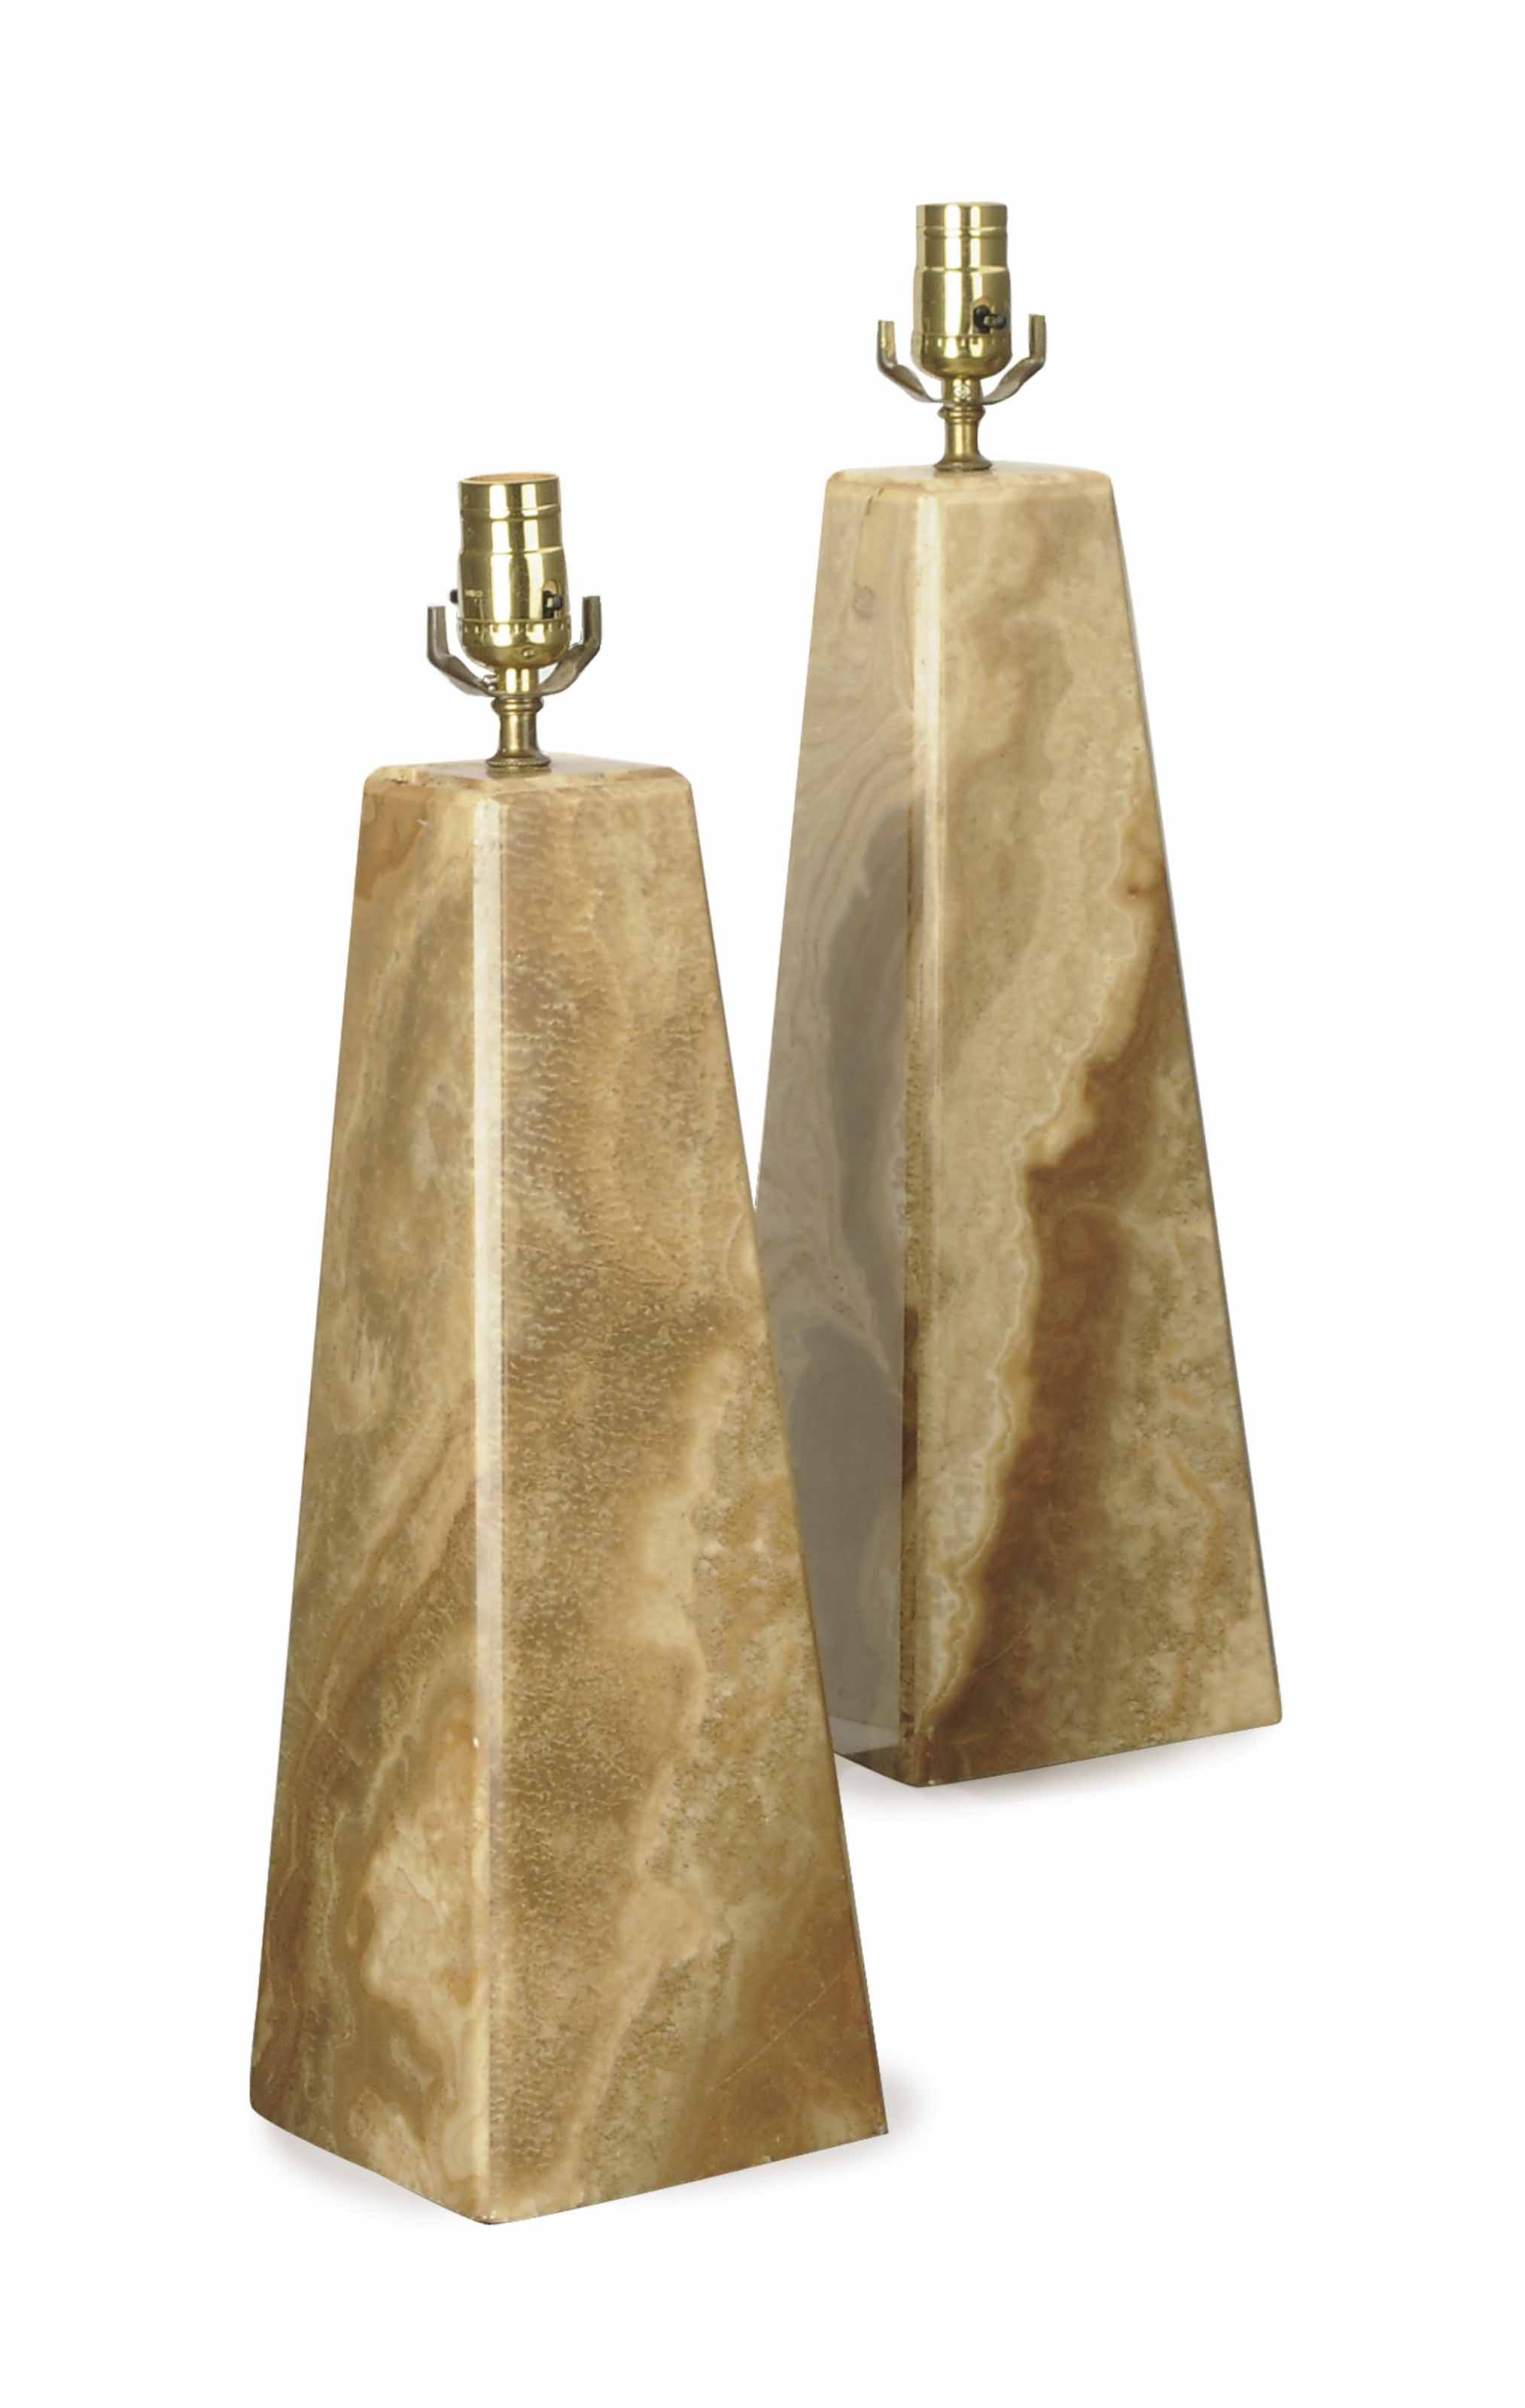 A PAIR OF ONYX PYRAMID-FORM TABLE LAMPS,